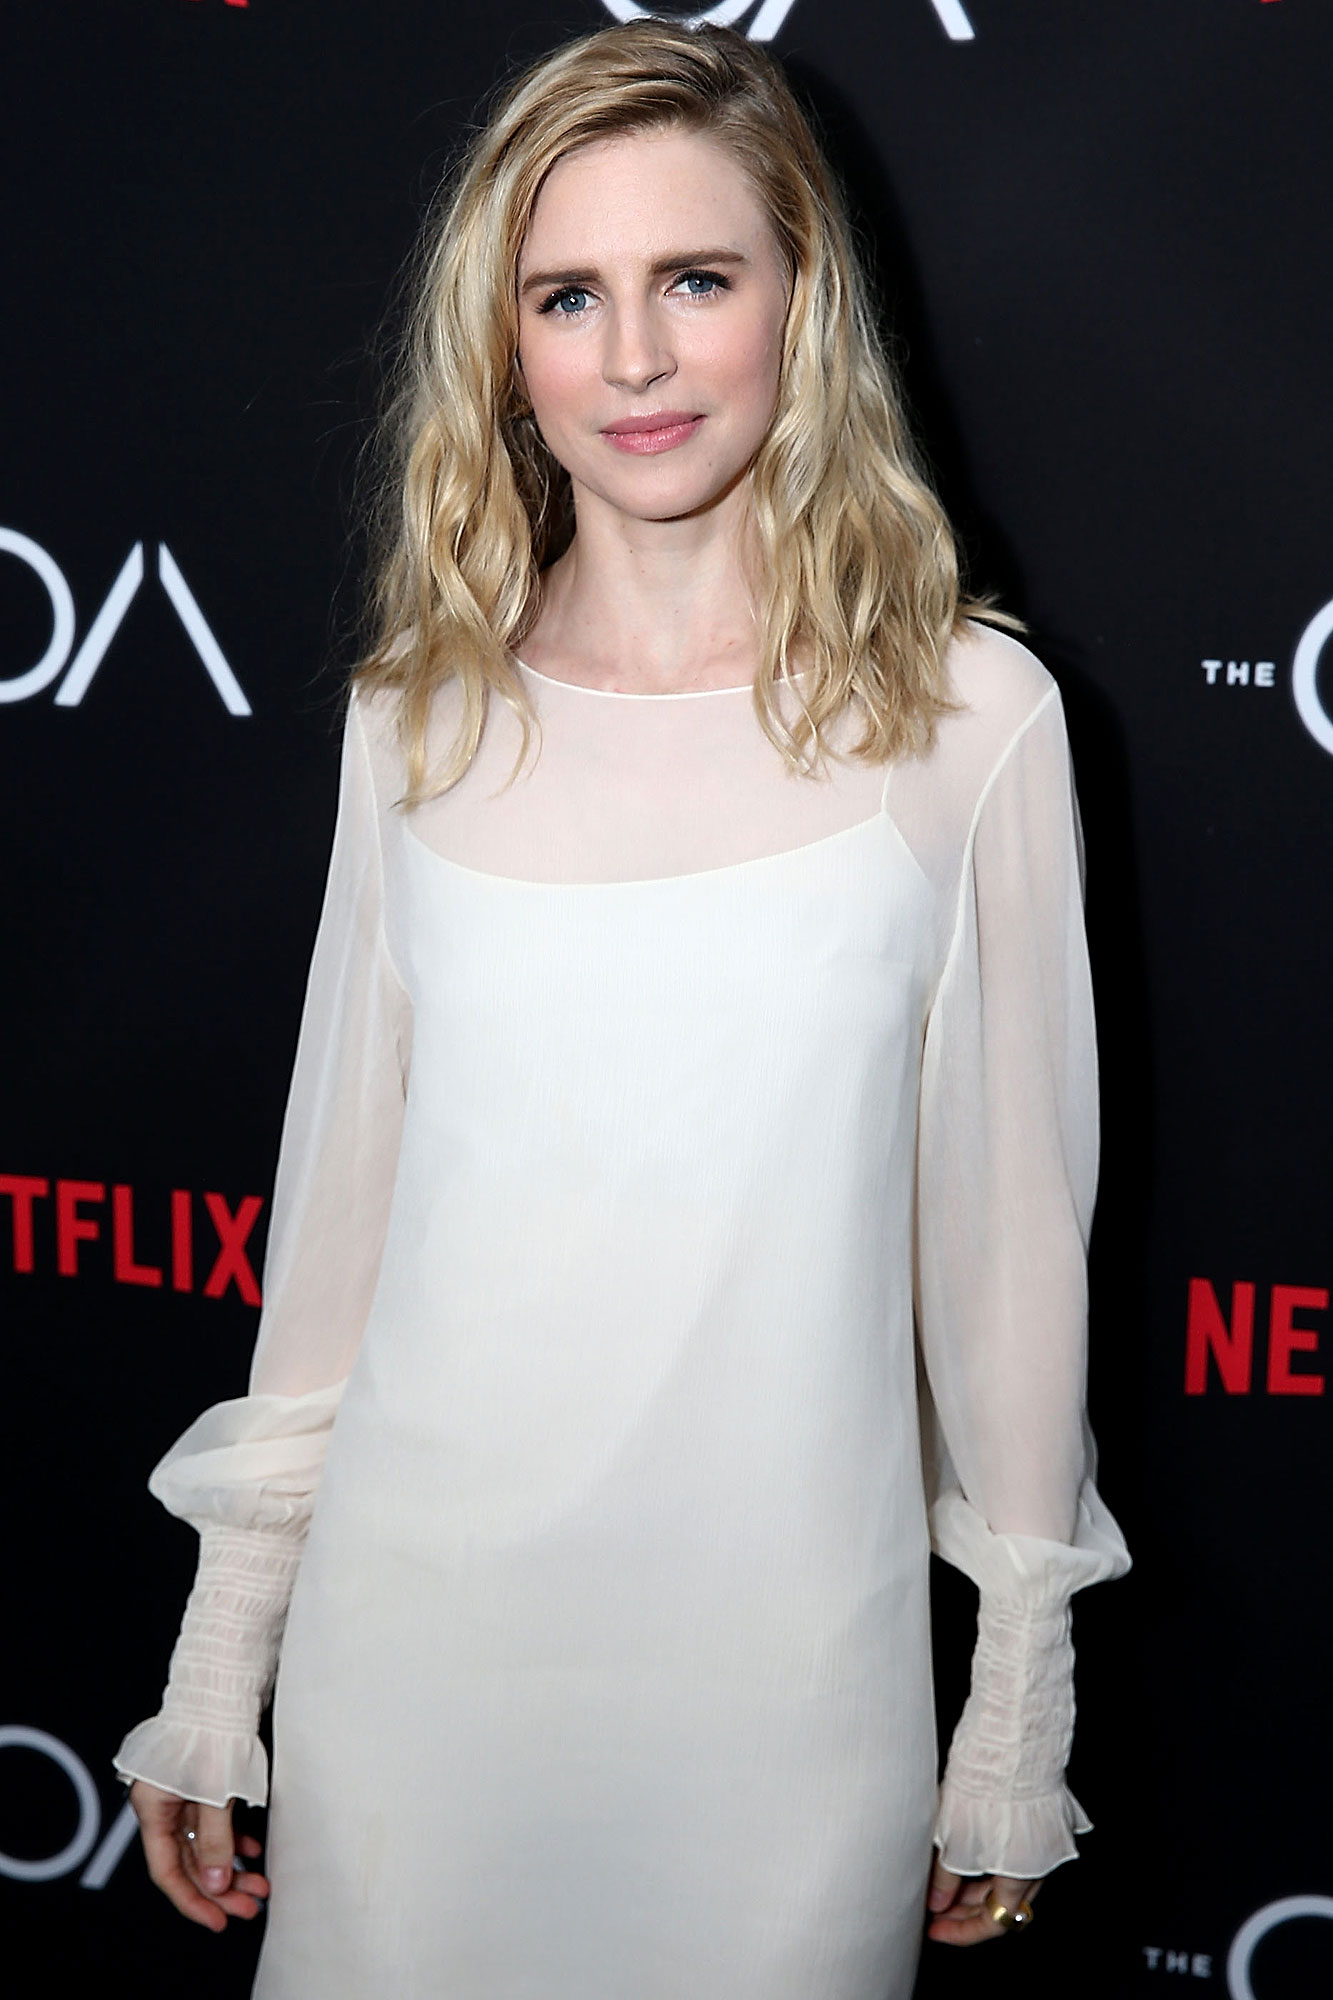 brit-marling-1333x2000